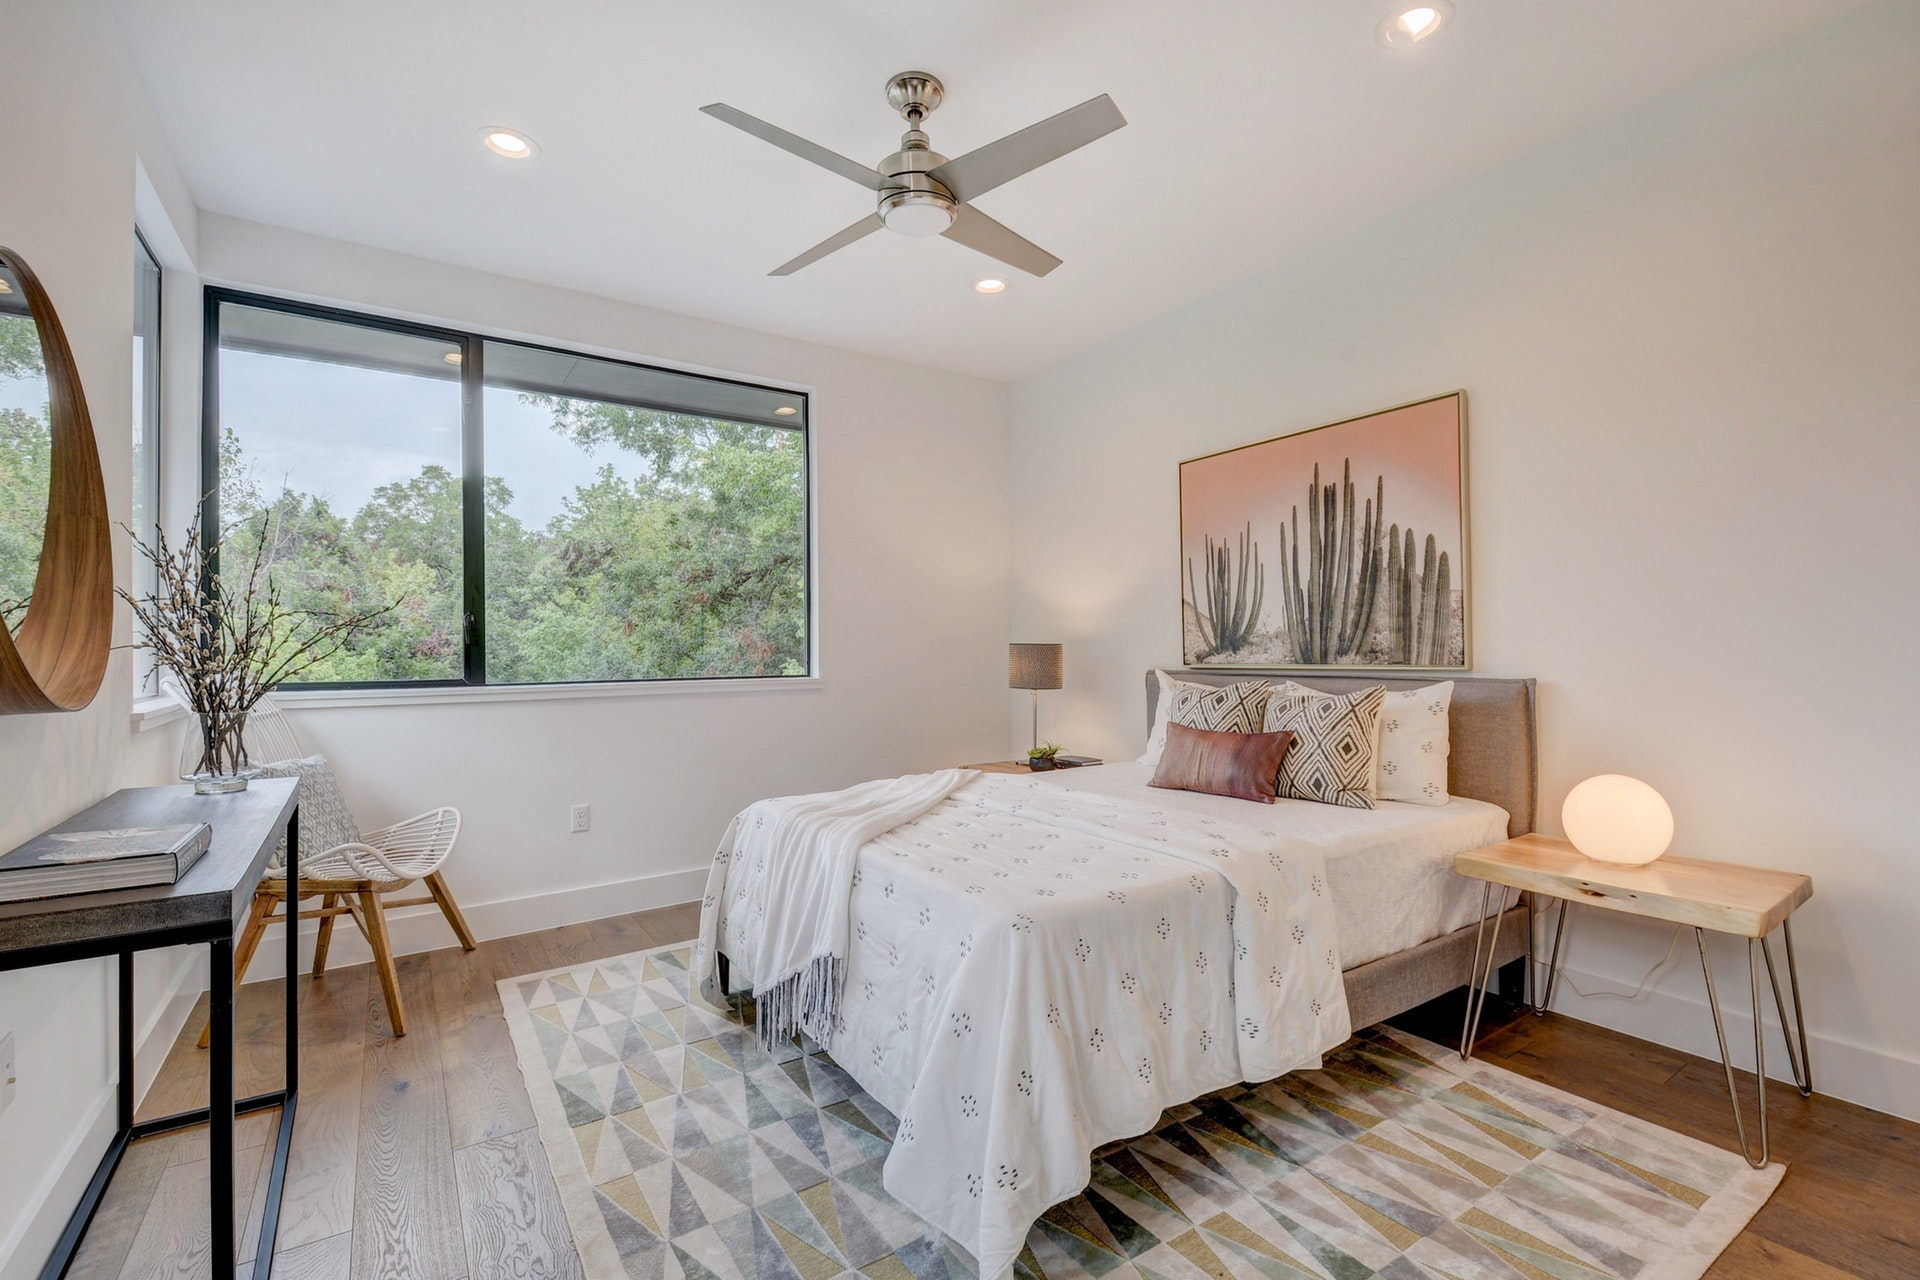 The second master suite is upstairs and includes an ensuite bathroom. The style is Marfa Texas inspired Minimalism. The art over the bed is from World Market.